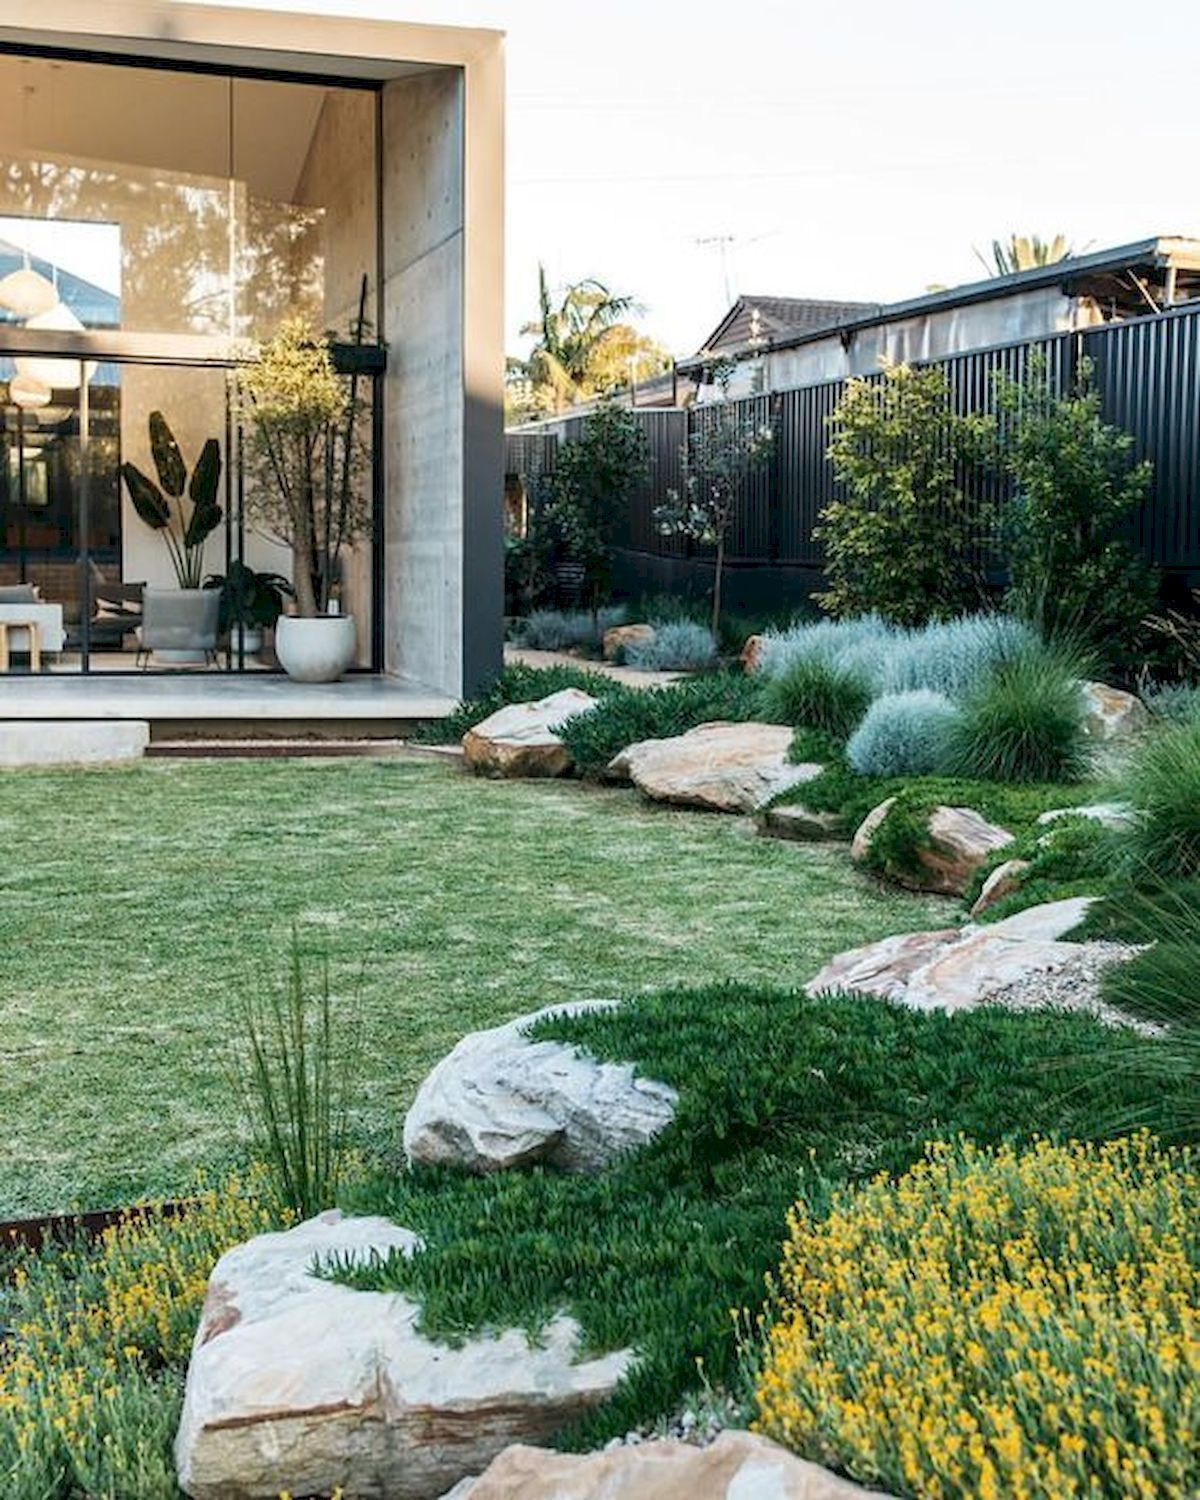 47 Picturesque Backyard Landscaping Designs Layout With